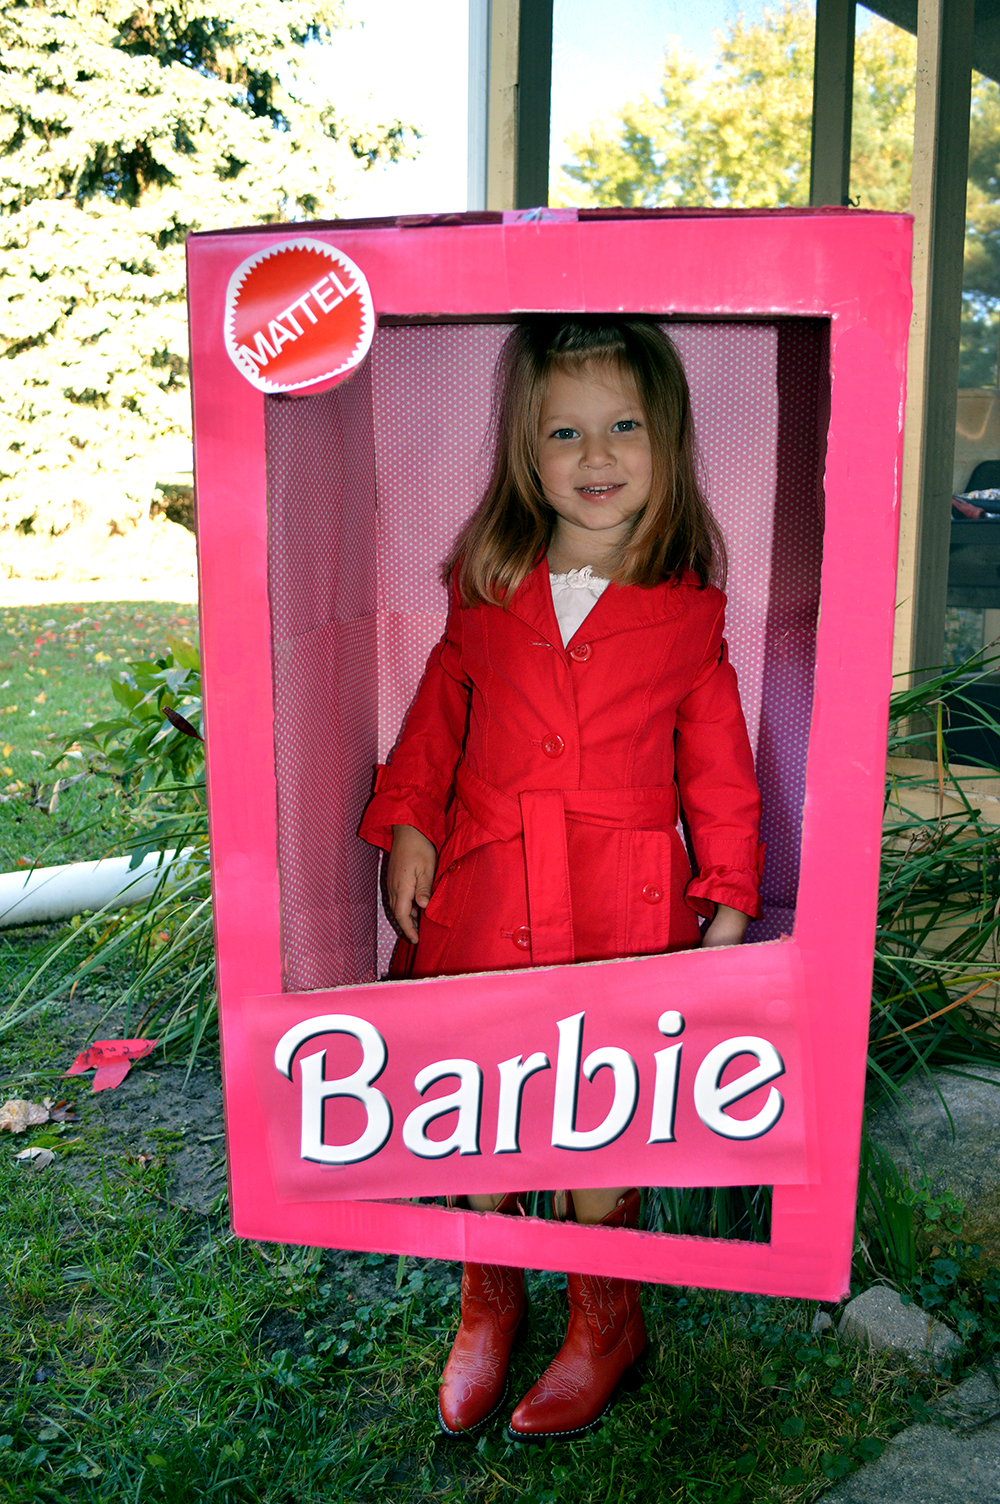 barbieboxcostume - Halloween Box Costumes